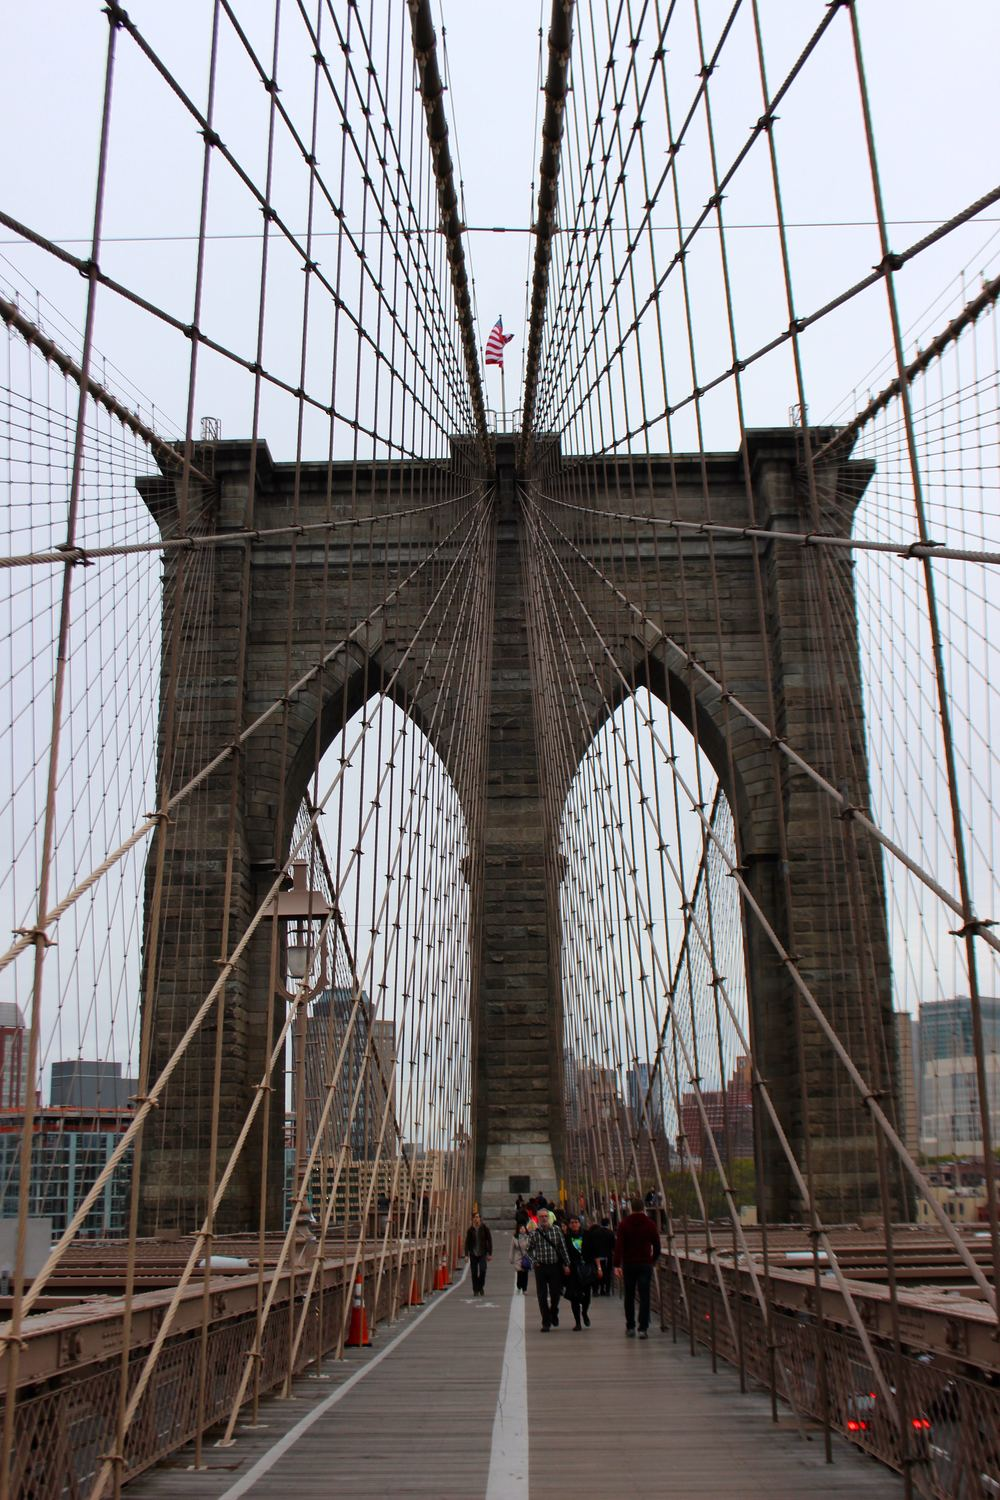 Over the Brooklyn Bridge on an overcast Columbus Day.